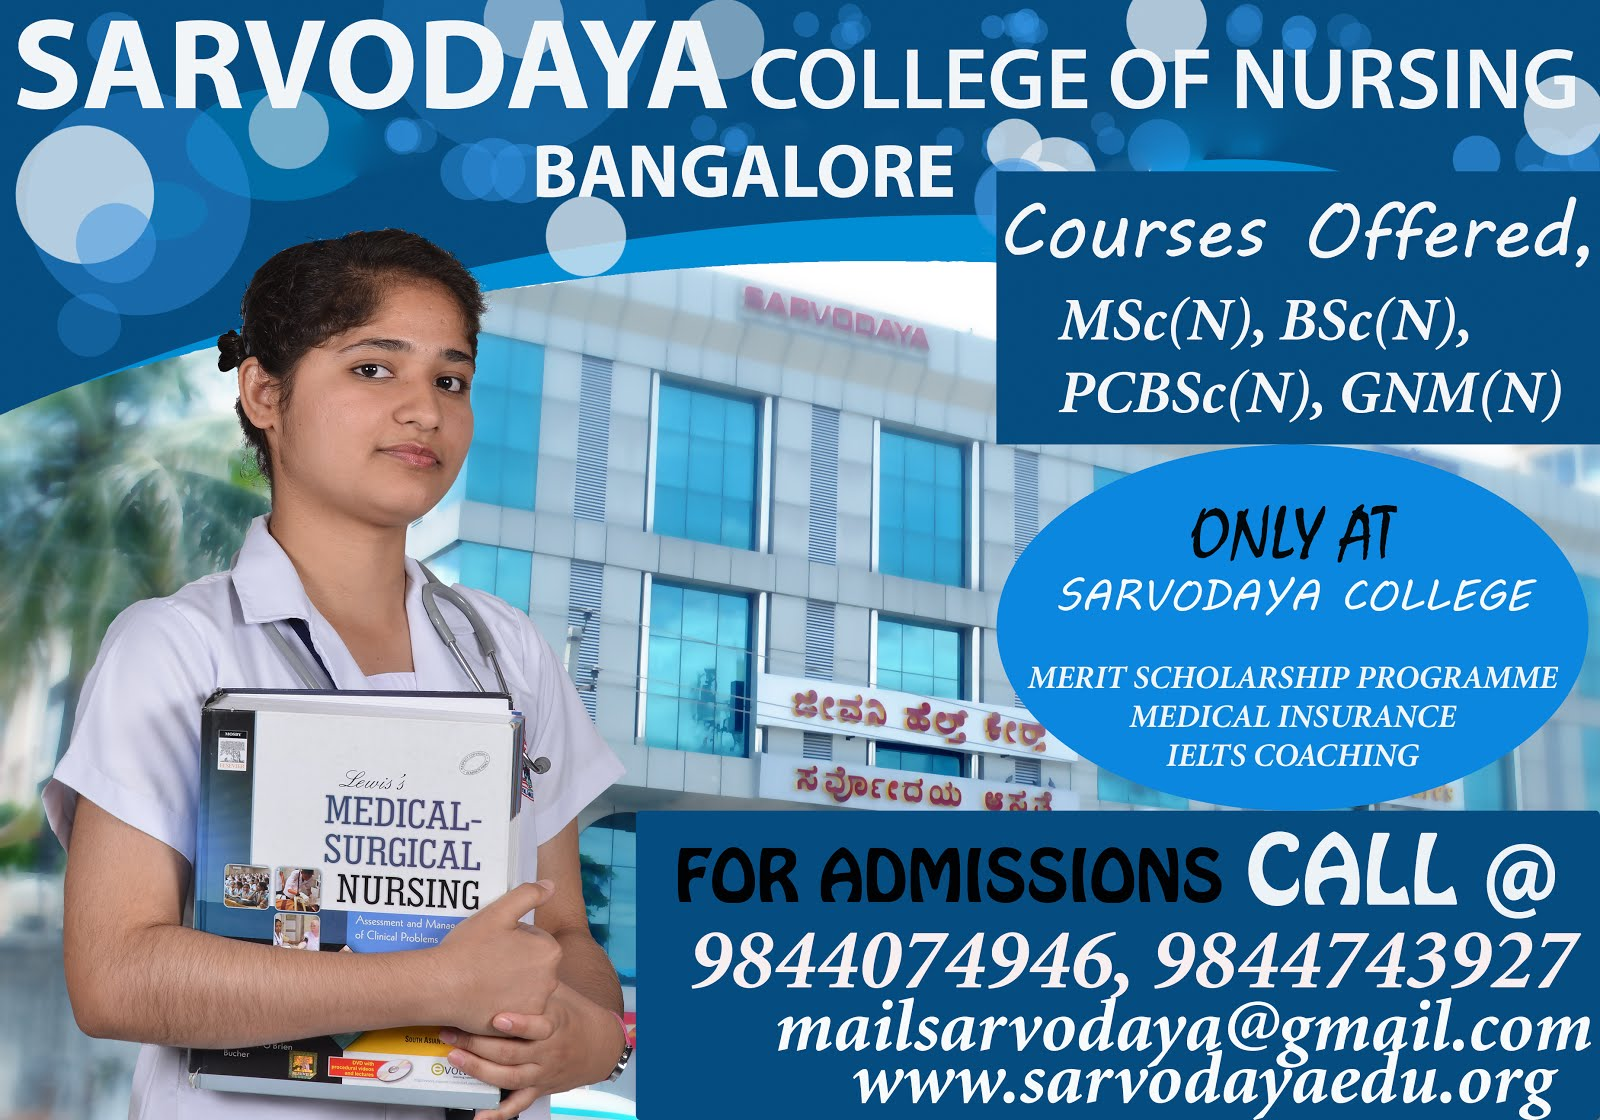 Sarvodaya College of Nursing, Leading Nursing College in Bangalore